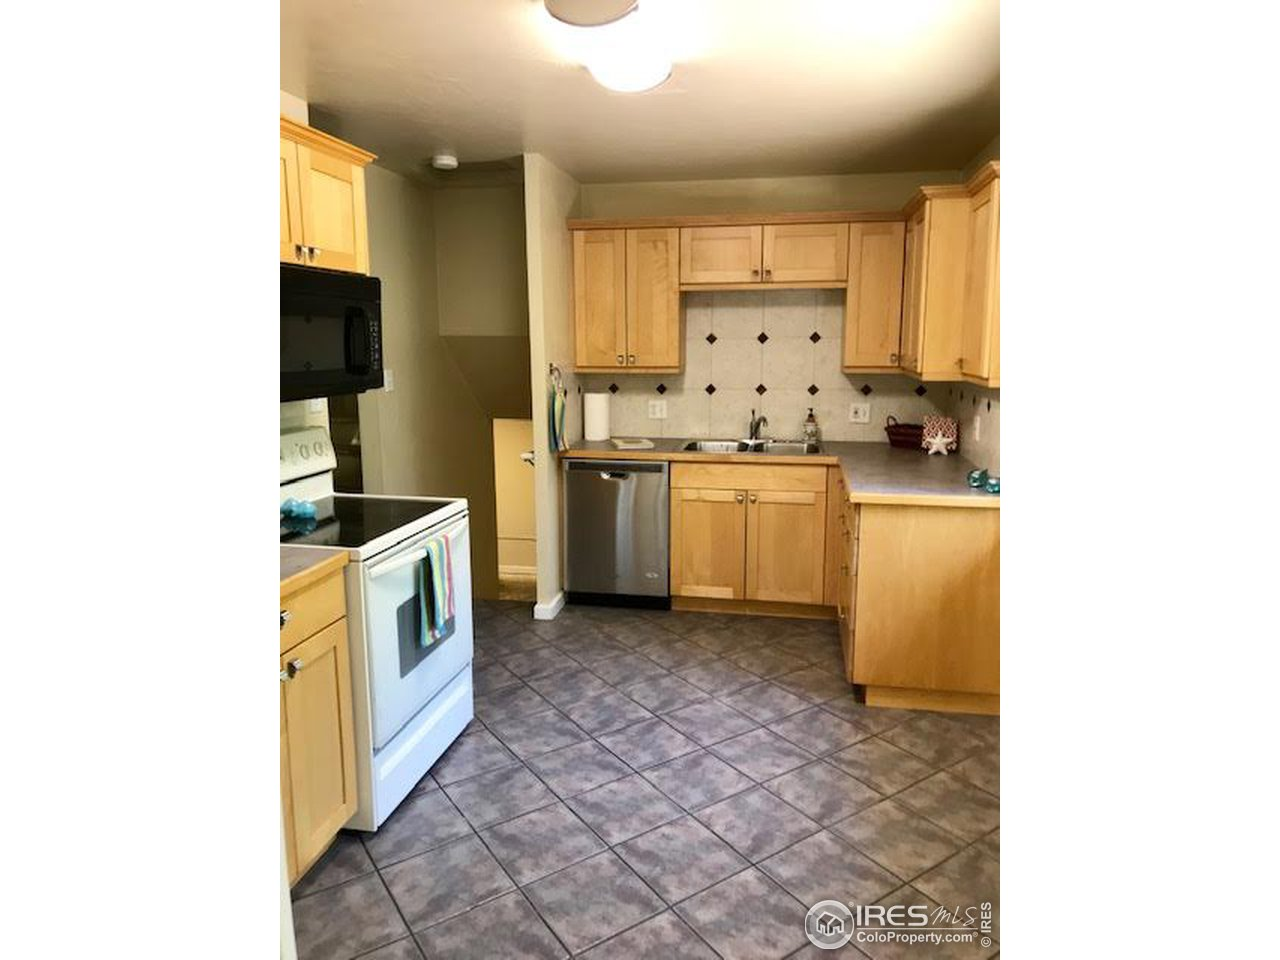 Spacious kitchen with room for a table!